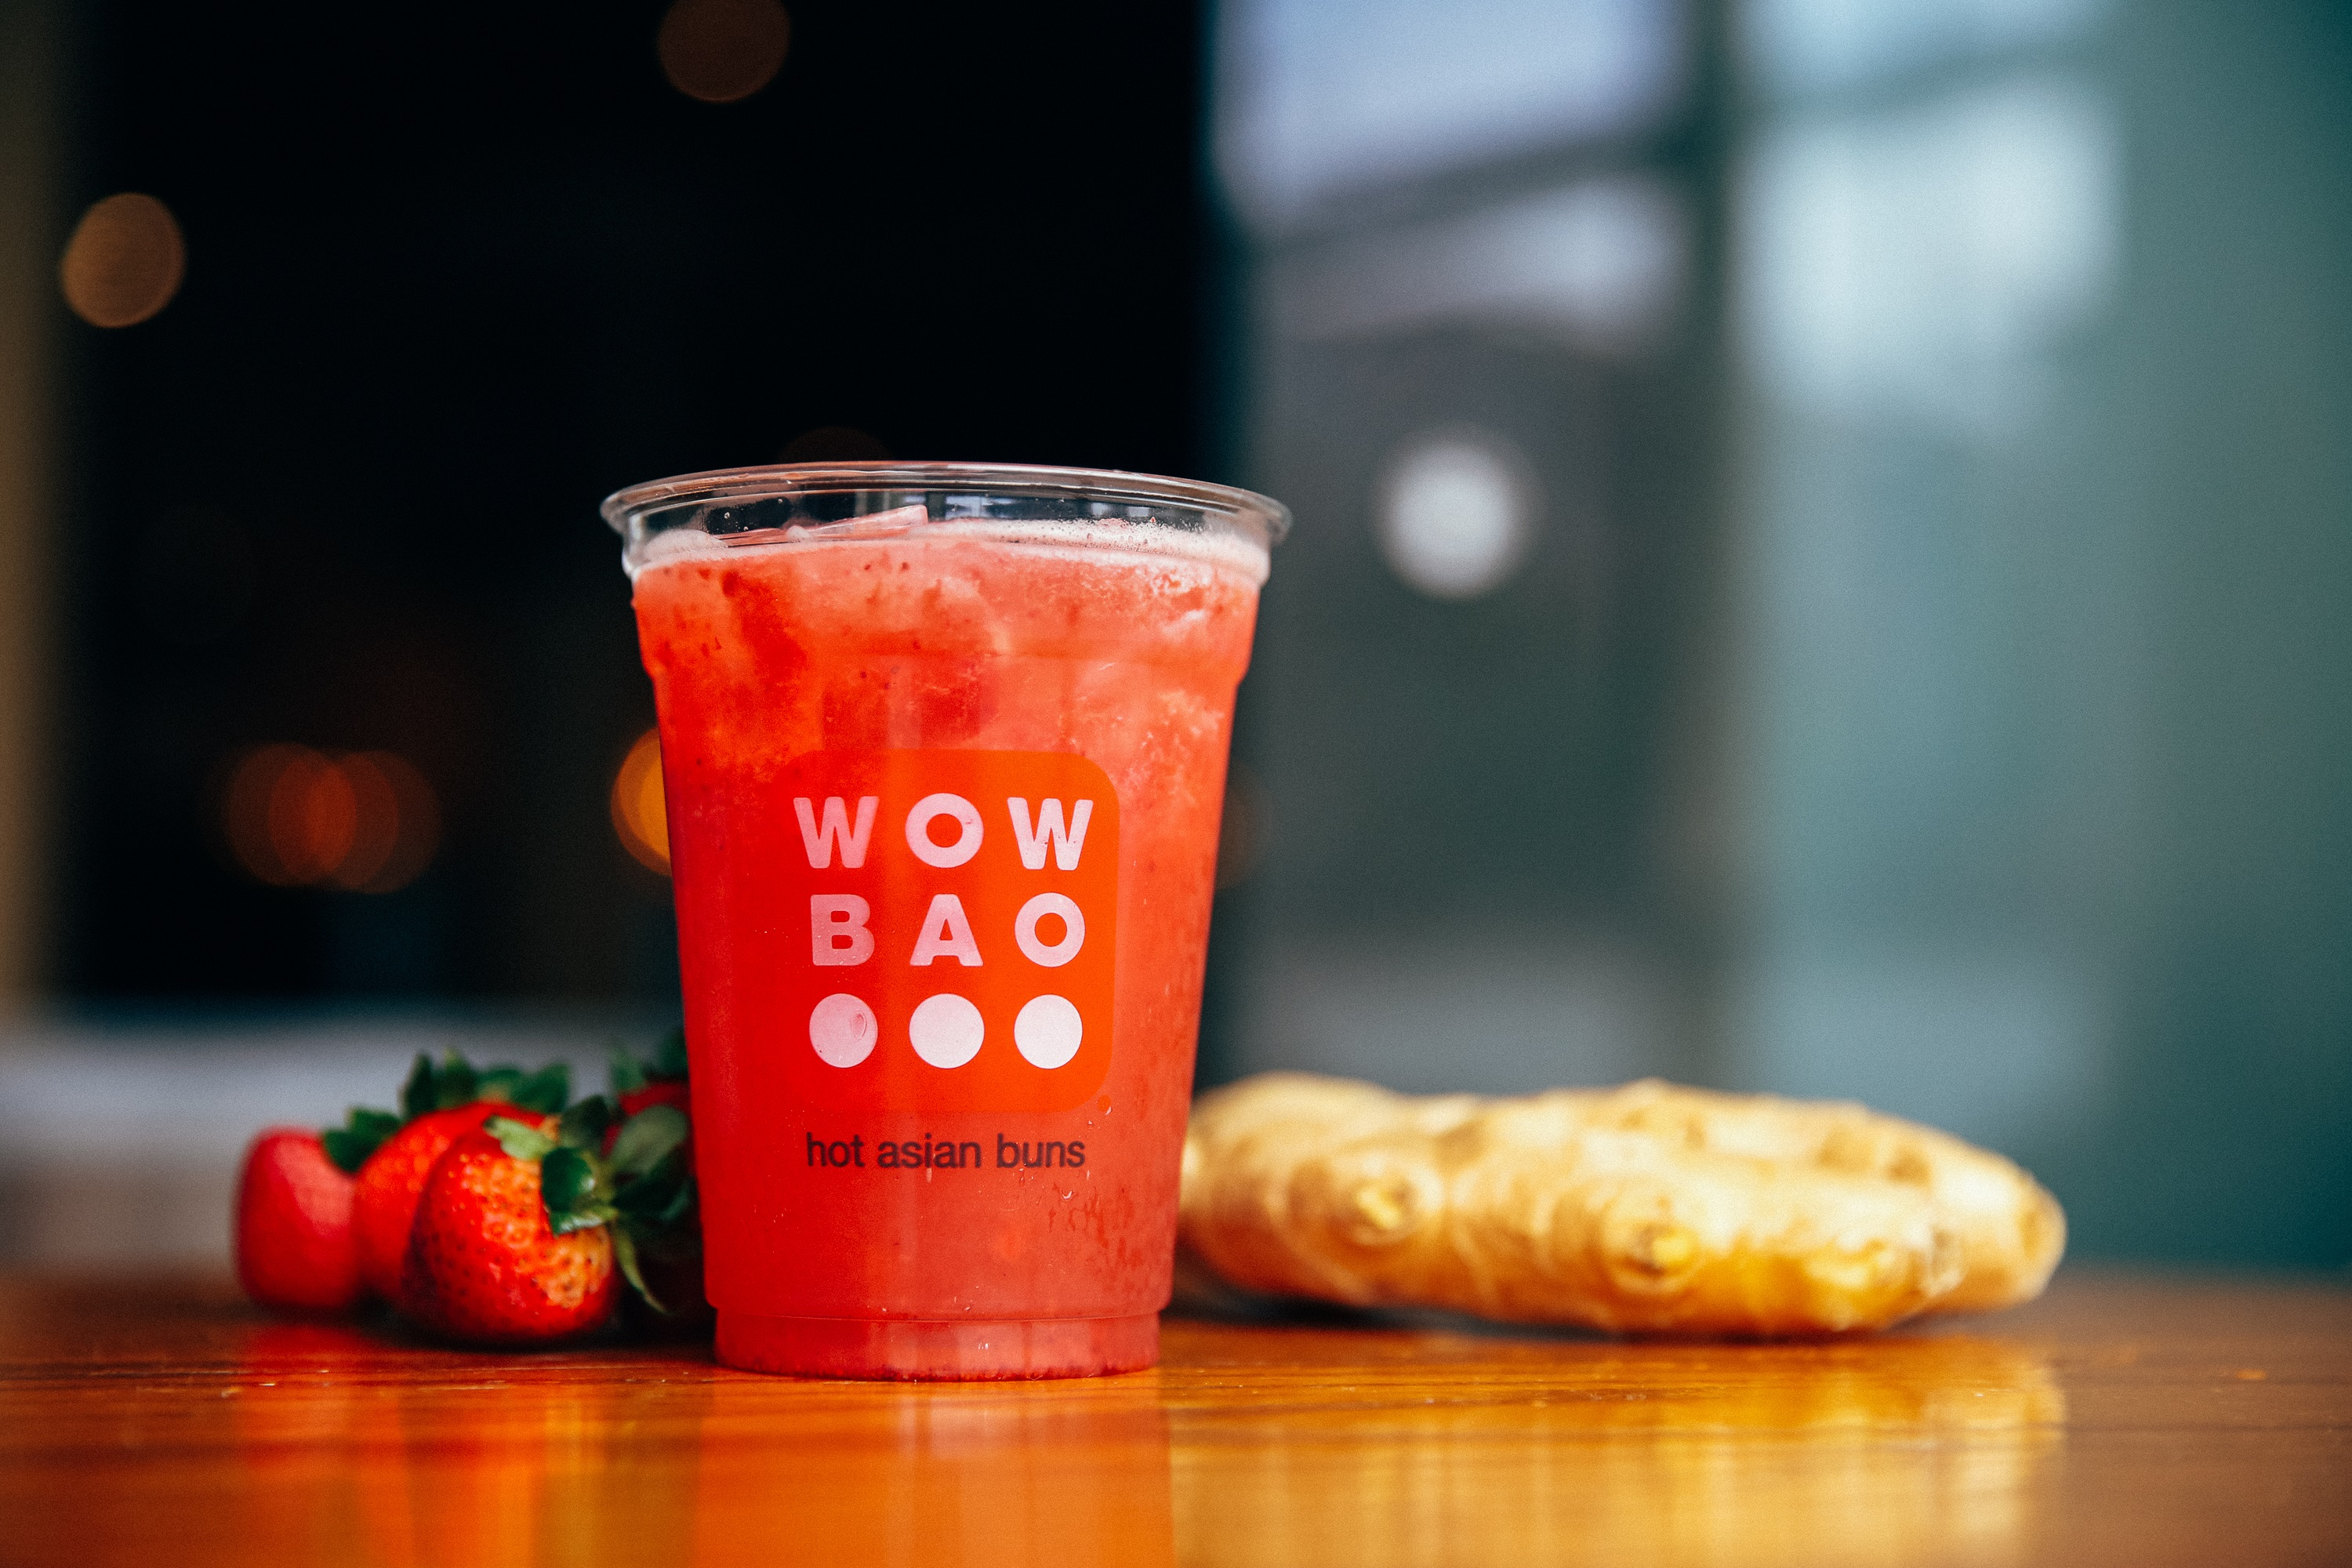 A plastic Wow Bao cup that is filled with a red strawberry drink